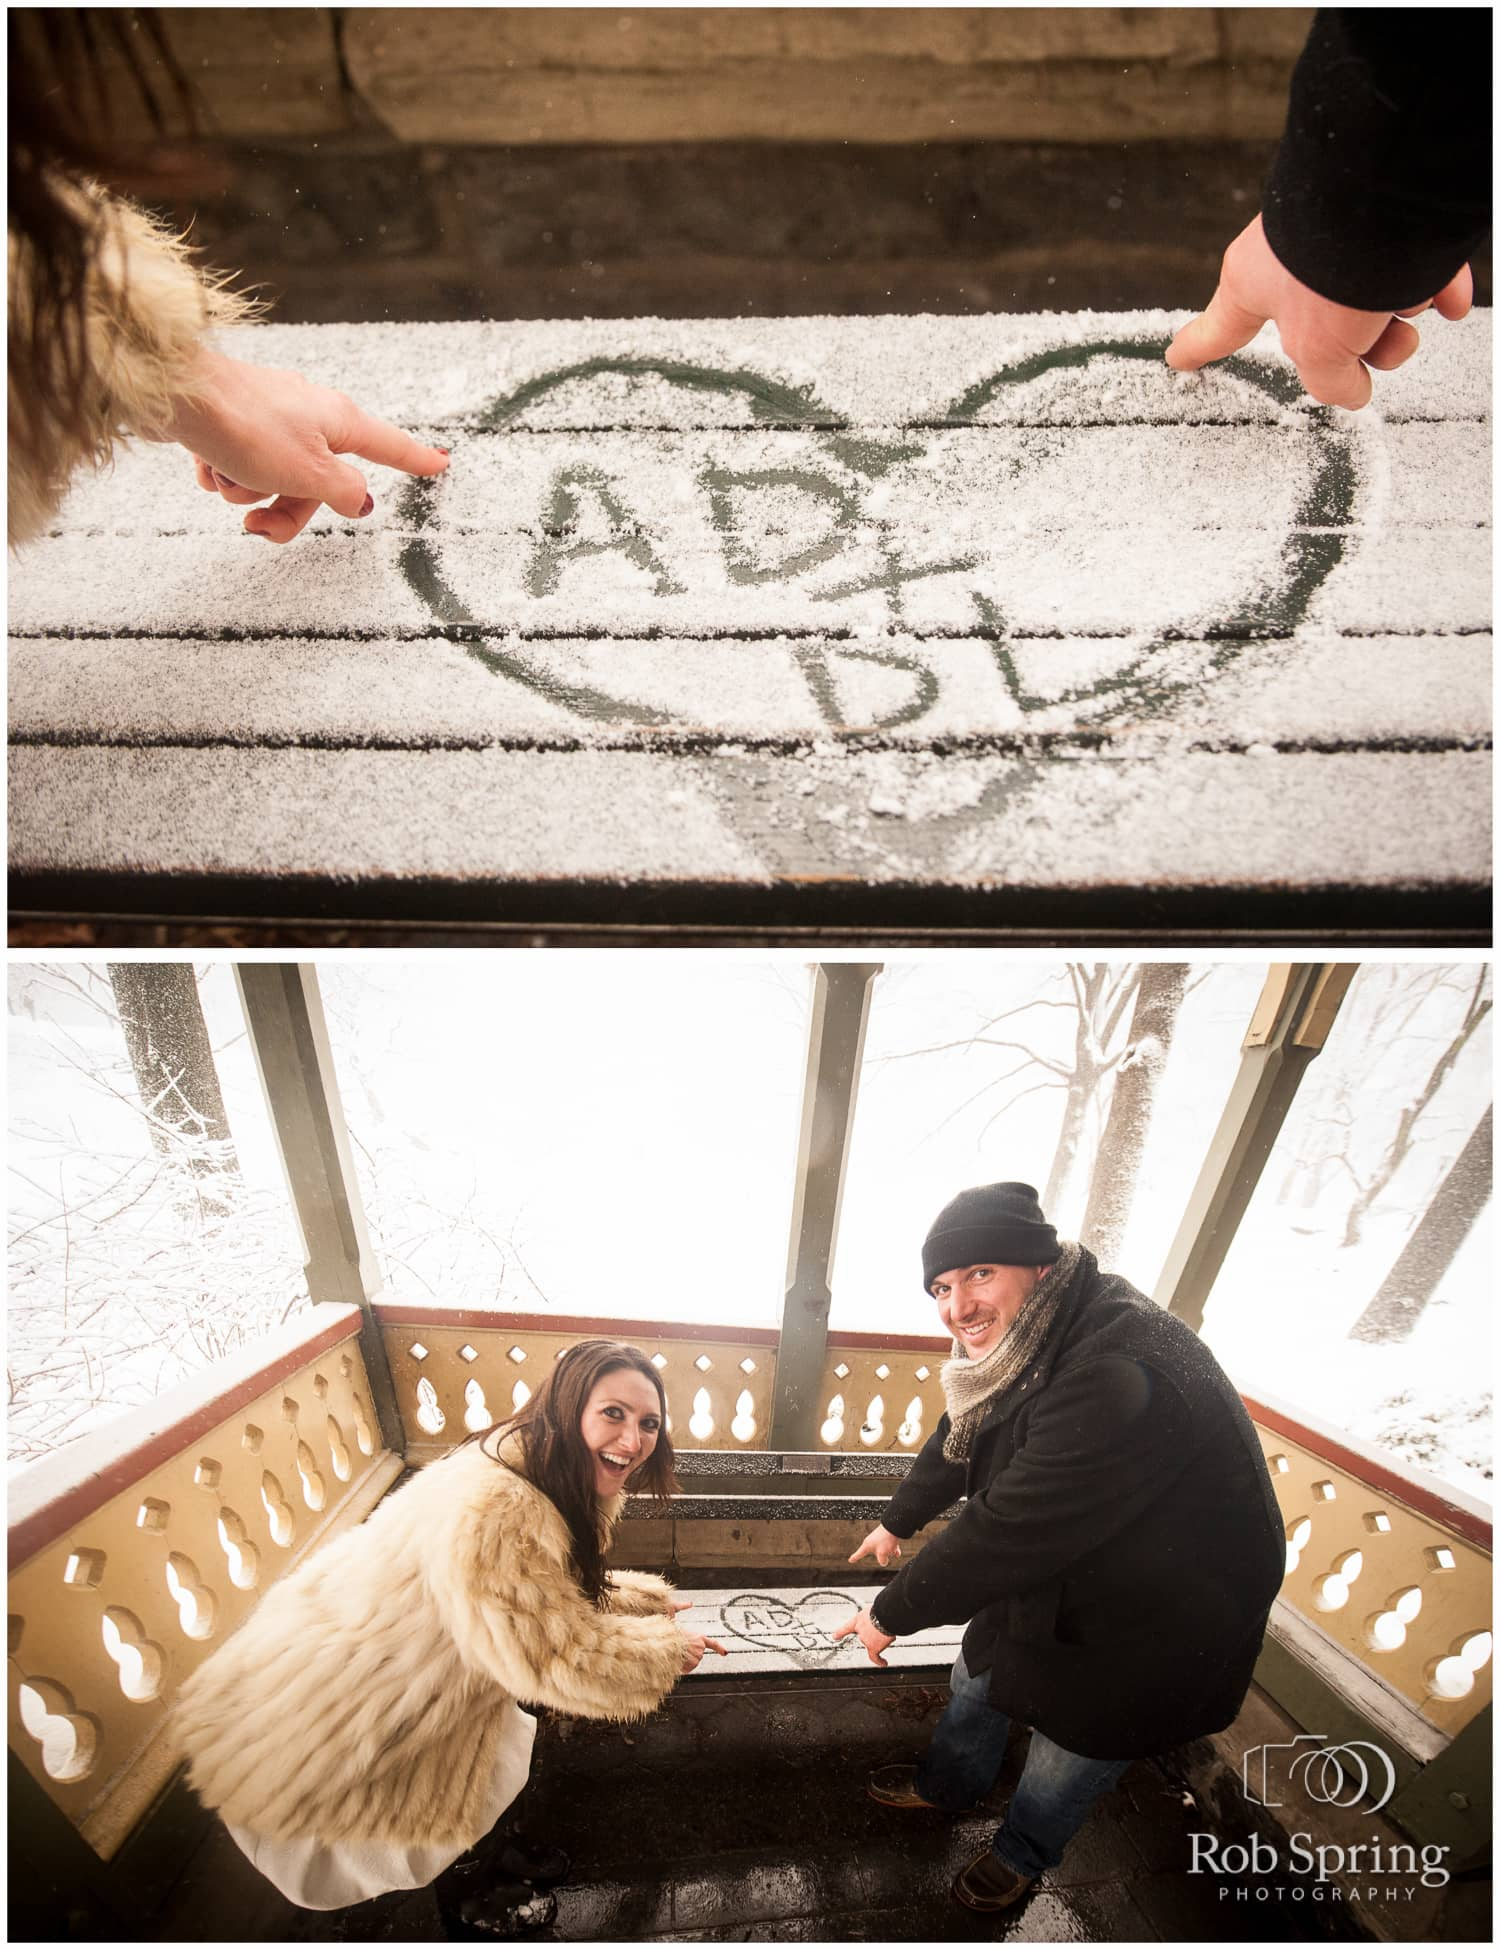 Couple writing initials in the snow